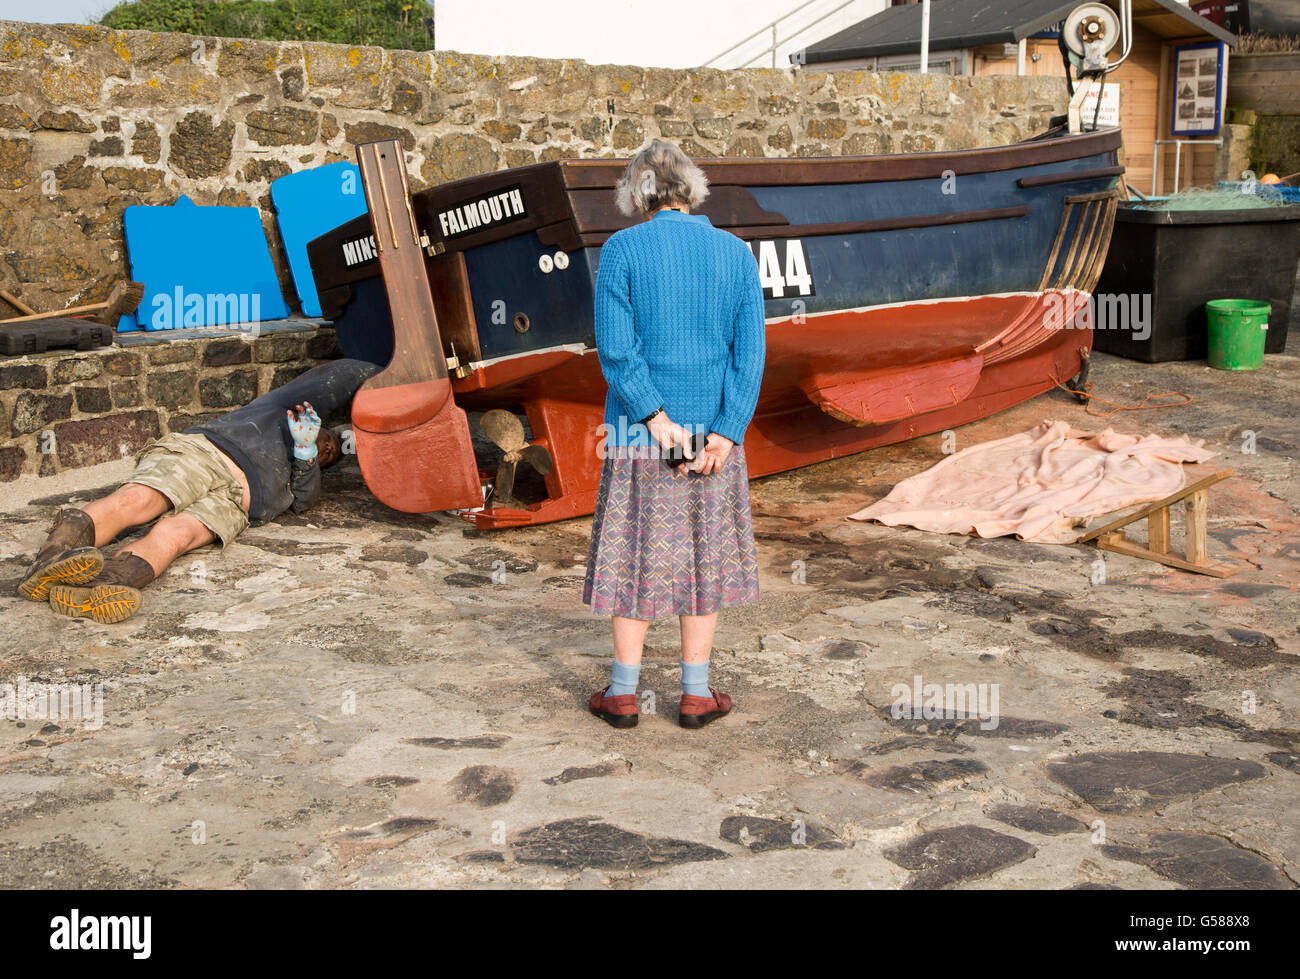 Man painting small fishing boat watched by an elderly woman presumably his mother, Coverack, Cornwall, England, - Stock Image